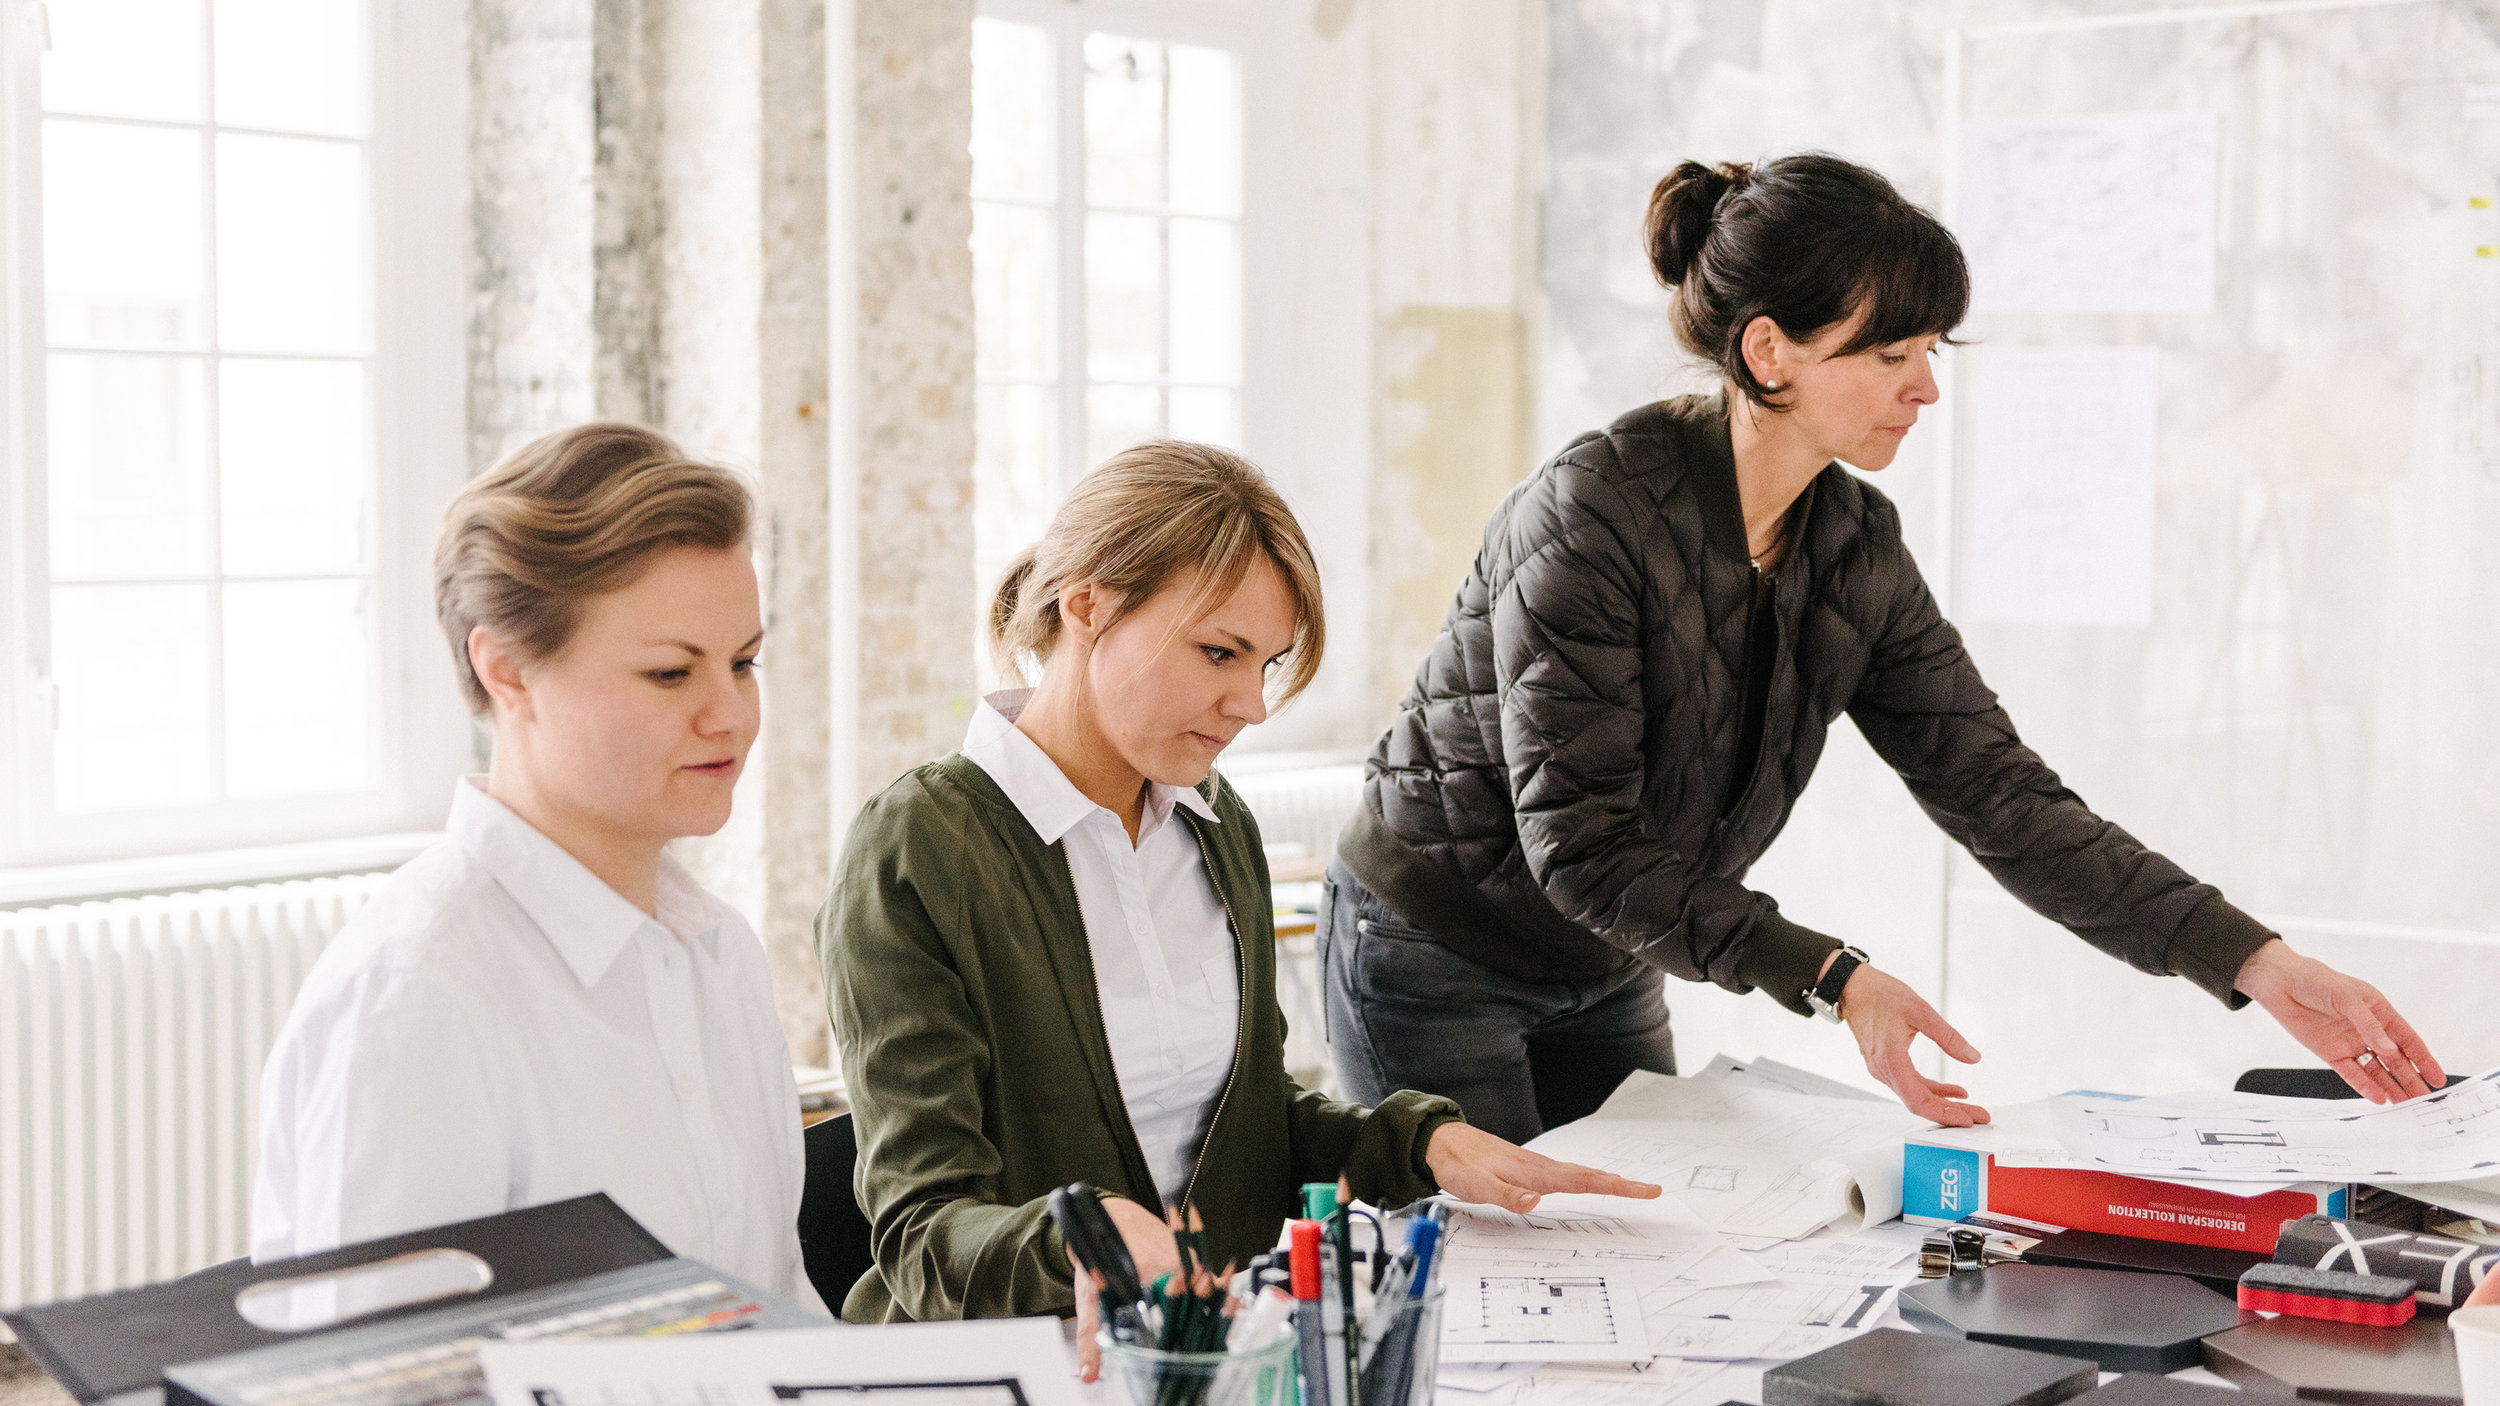 Siemens Built-In Kitchen Project, Anna-Riikka & Katriina Nuutinen at meeting in Berlin 2017   Read more about the project.